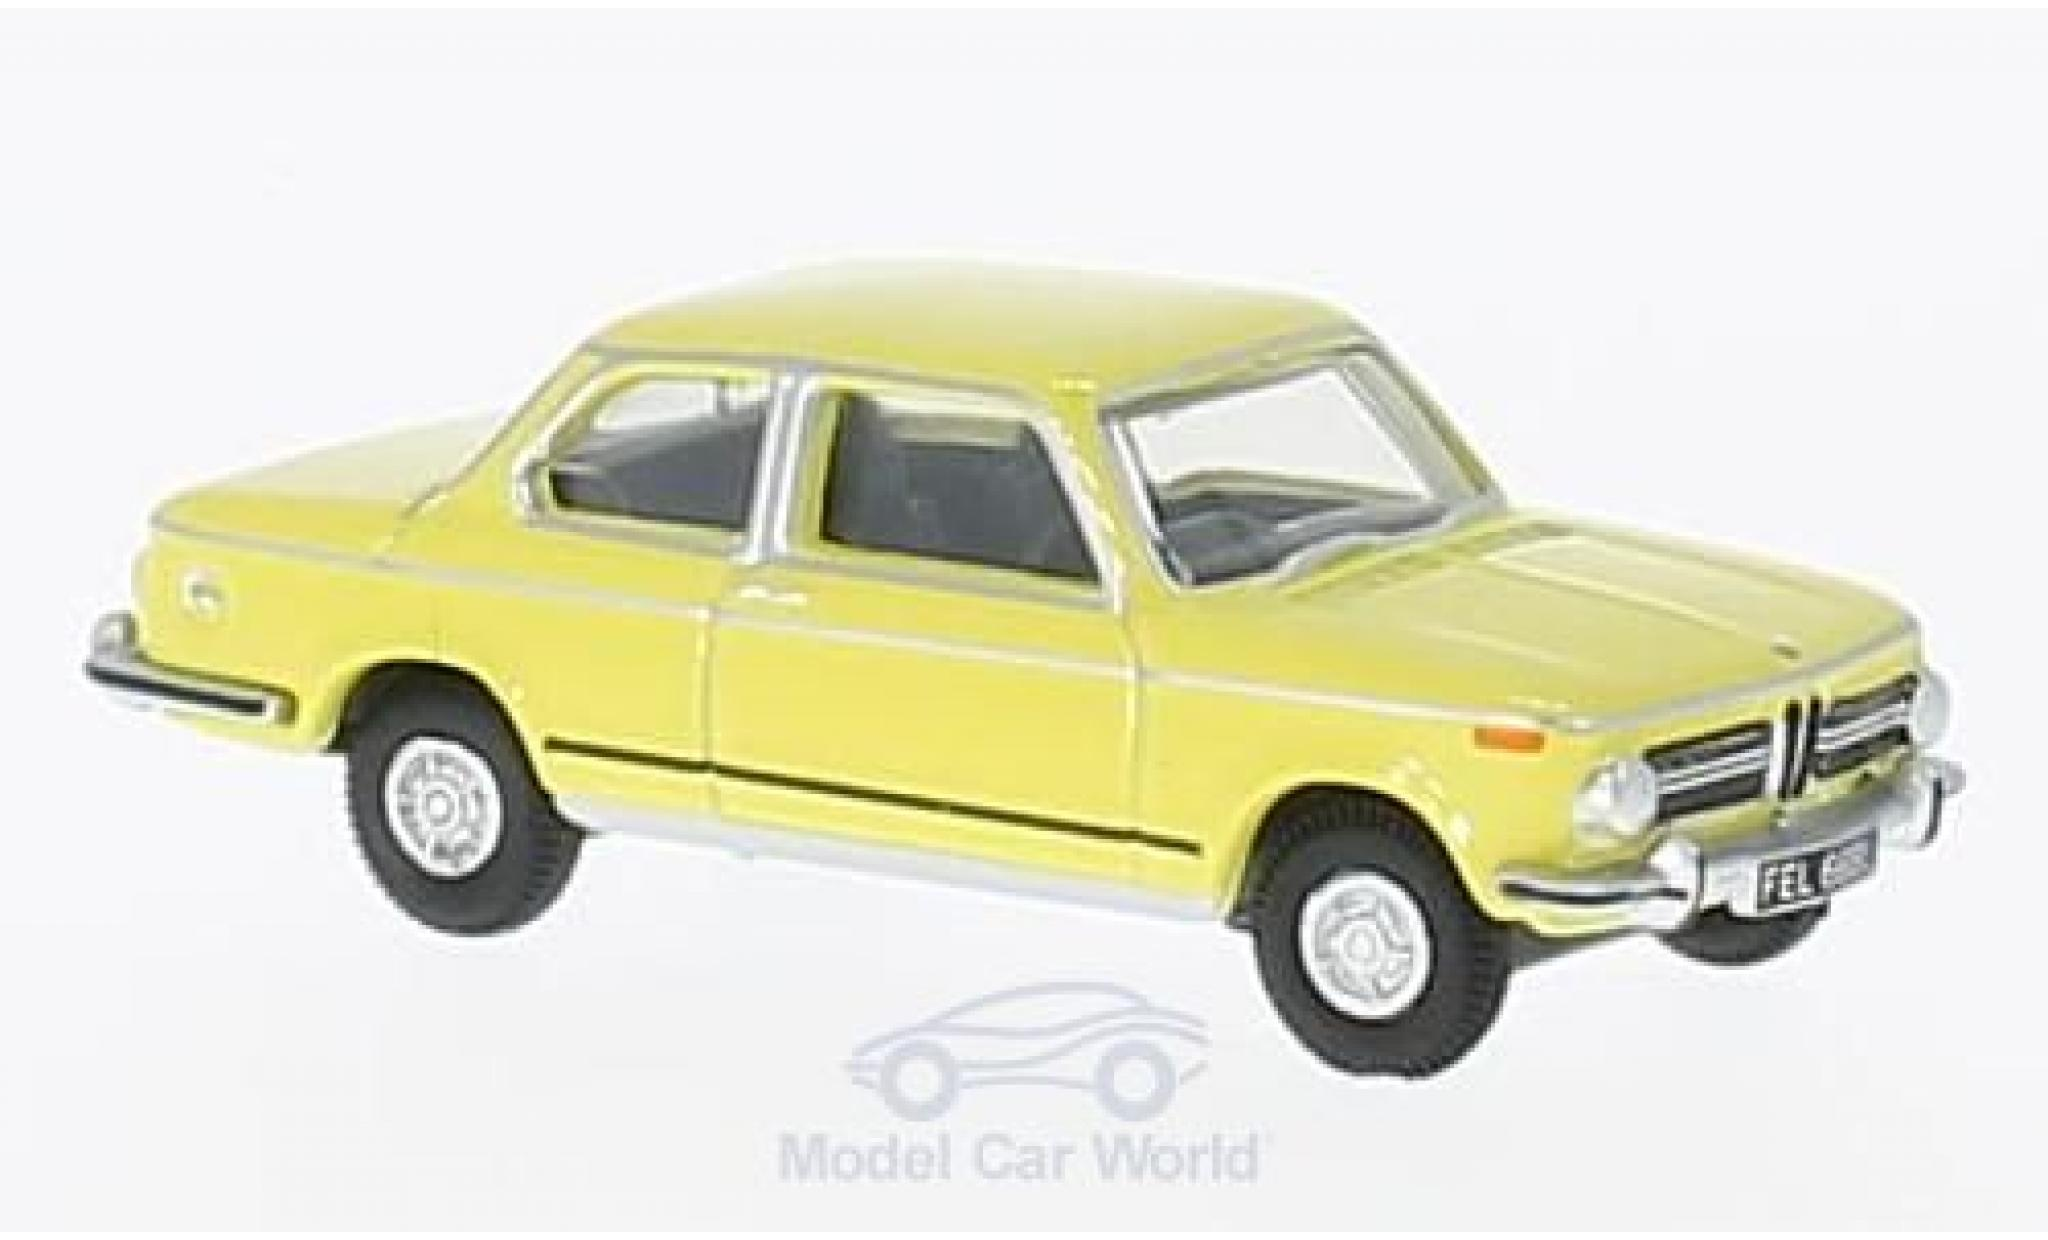 Bmw 2002 1/76 Oxford BMW jaune RHD